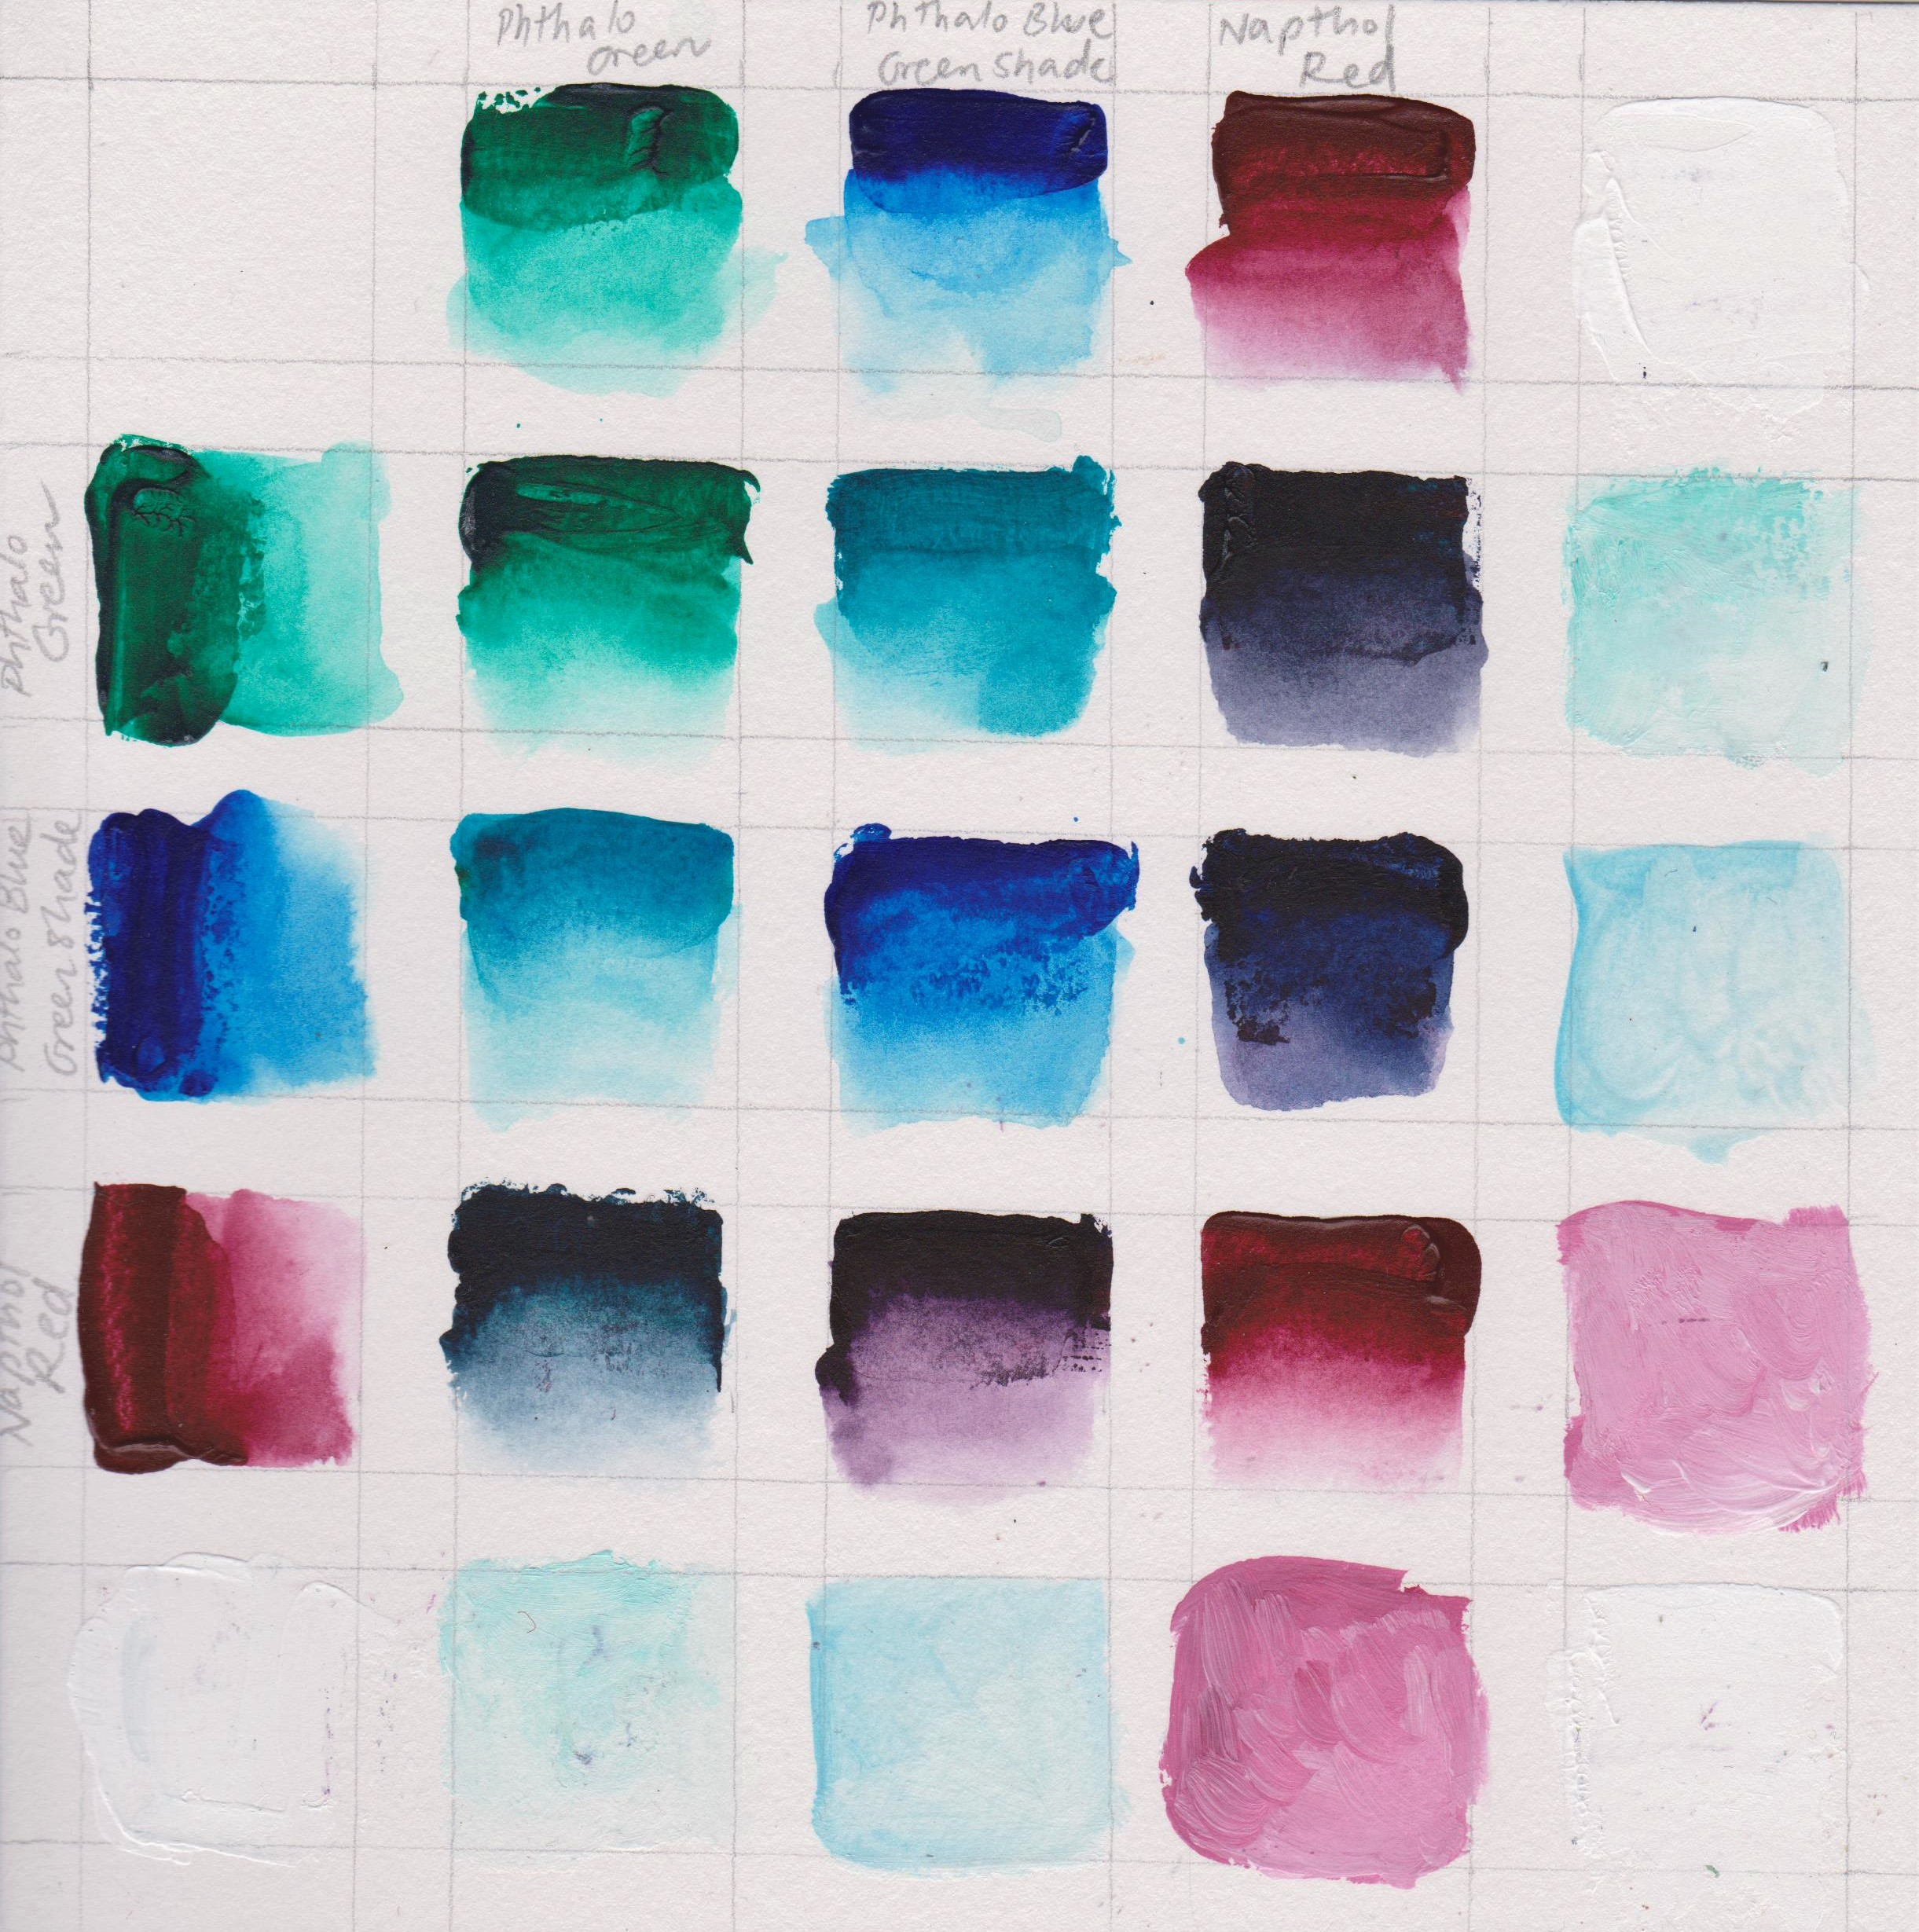 The top row (the x axis) and the far left column (the y axis) show the colours of my limited palette in their unmixed state - where the colour appears darkest is how the colour appears from the tube, I then thinned each colour out with a little water in the rest of the square. Each colour on the x axis is mixed with the corresponding y axis colour as you move down each column of squares.